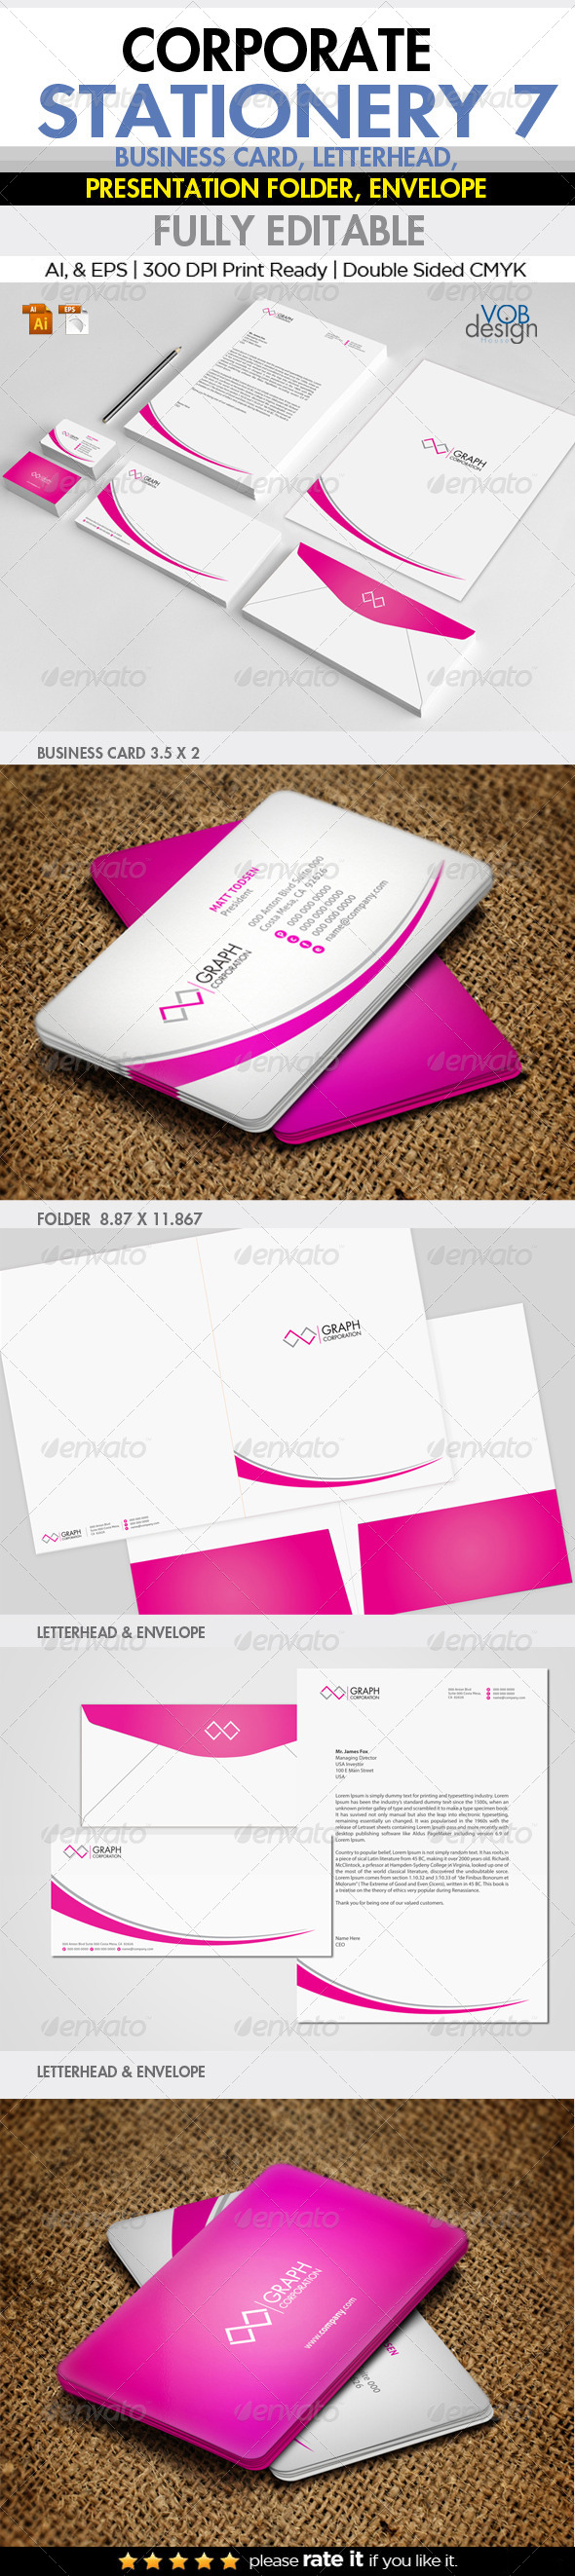 Corporate Stationery 7 - Stationery Print Templates